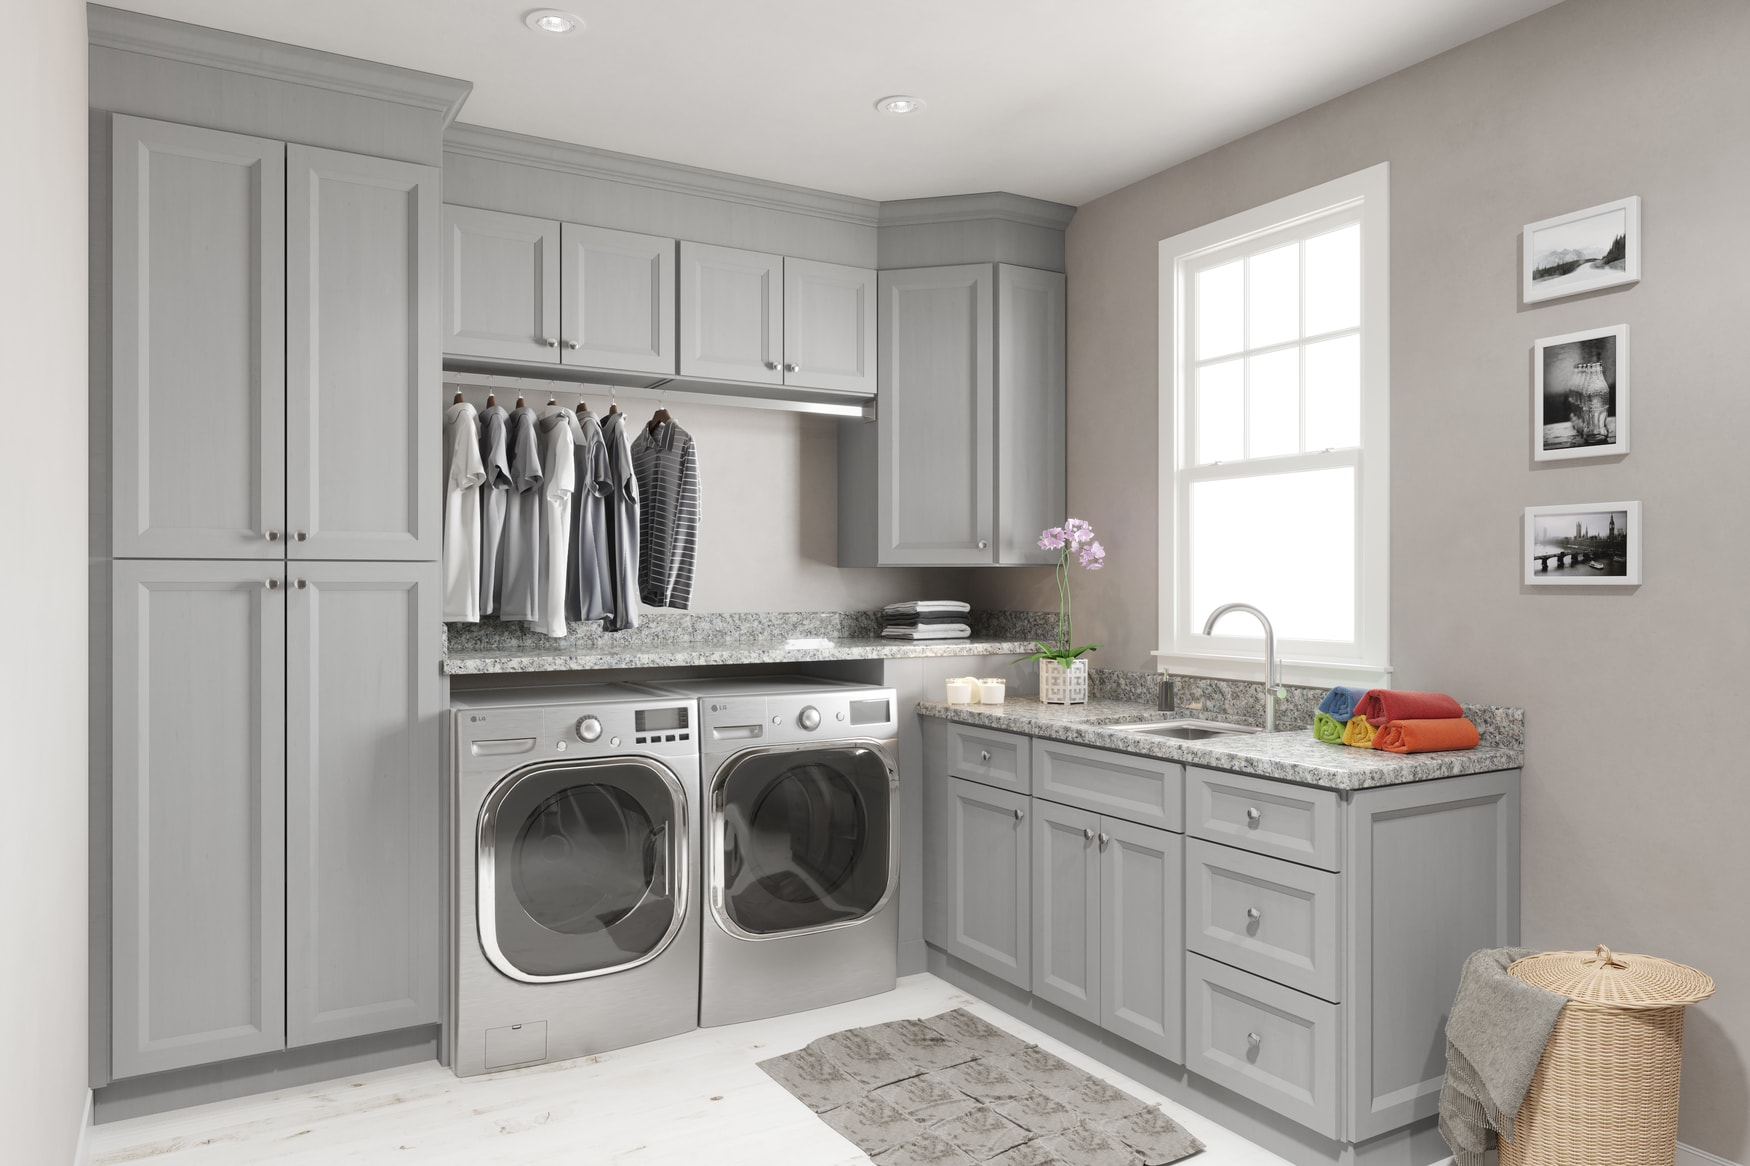 High Quality Laundry Room Cabinets - Willow Lane Cabinetry on Laundry Cabinets  id=12683